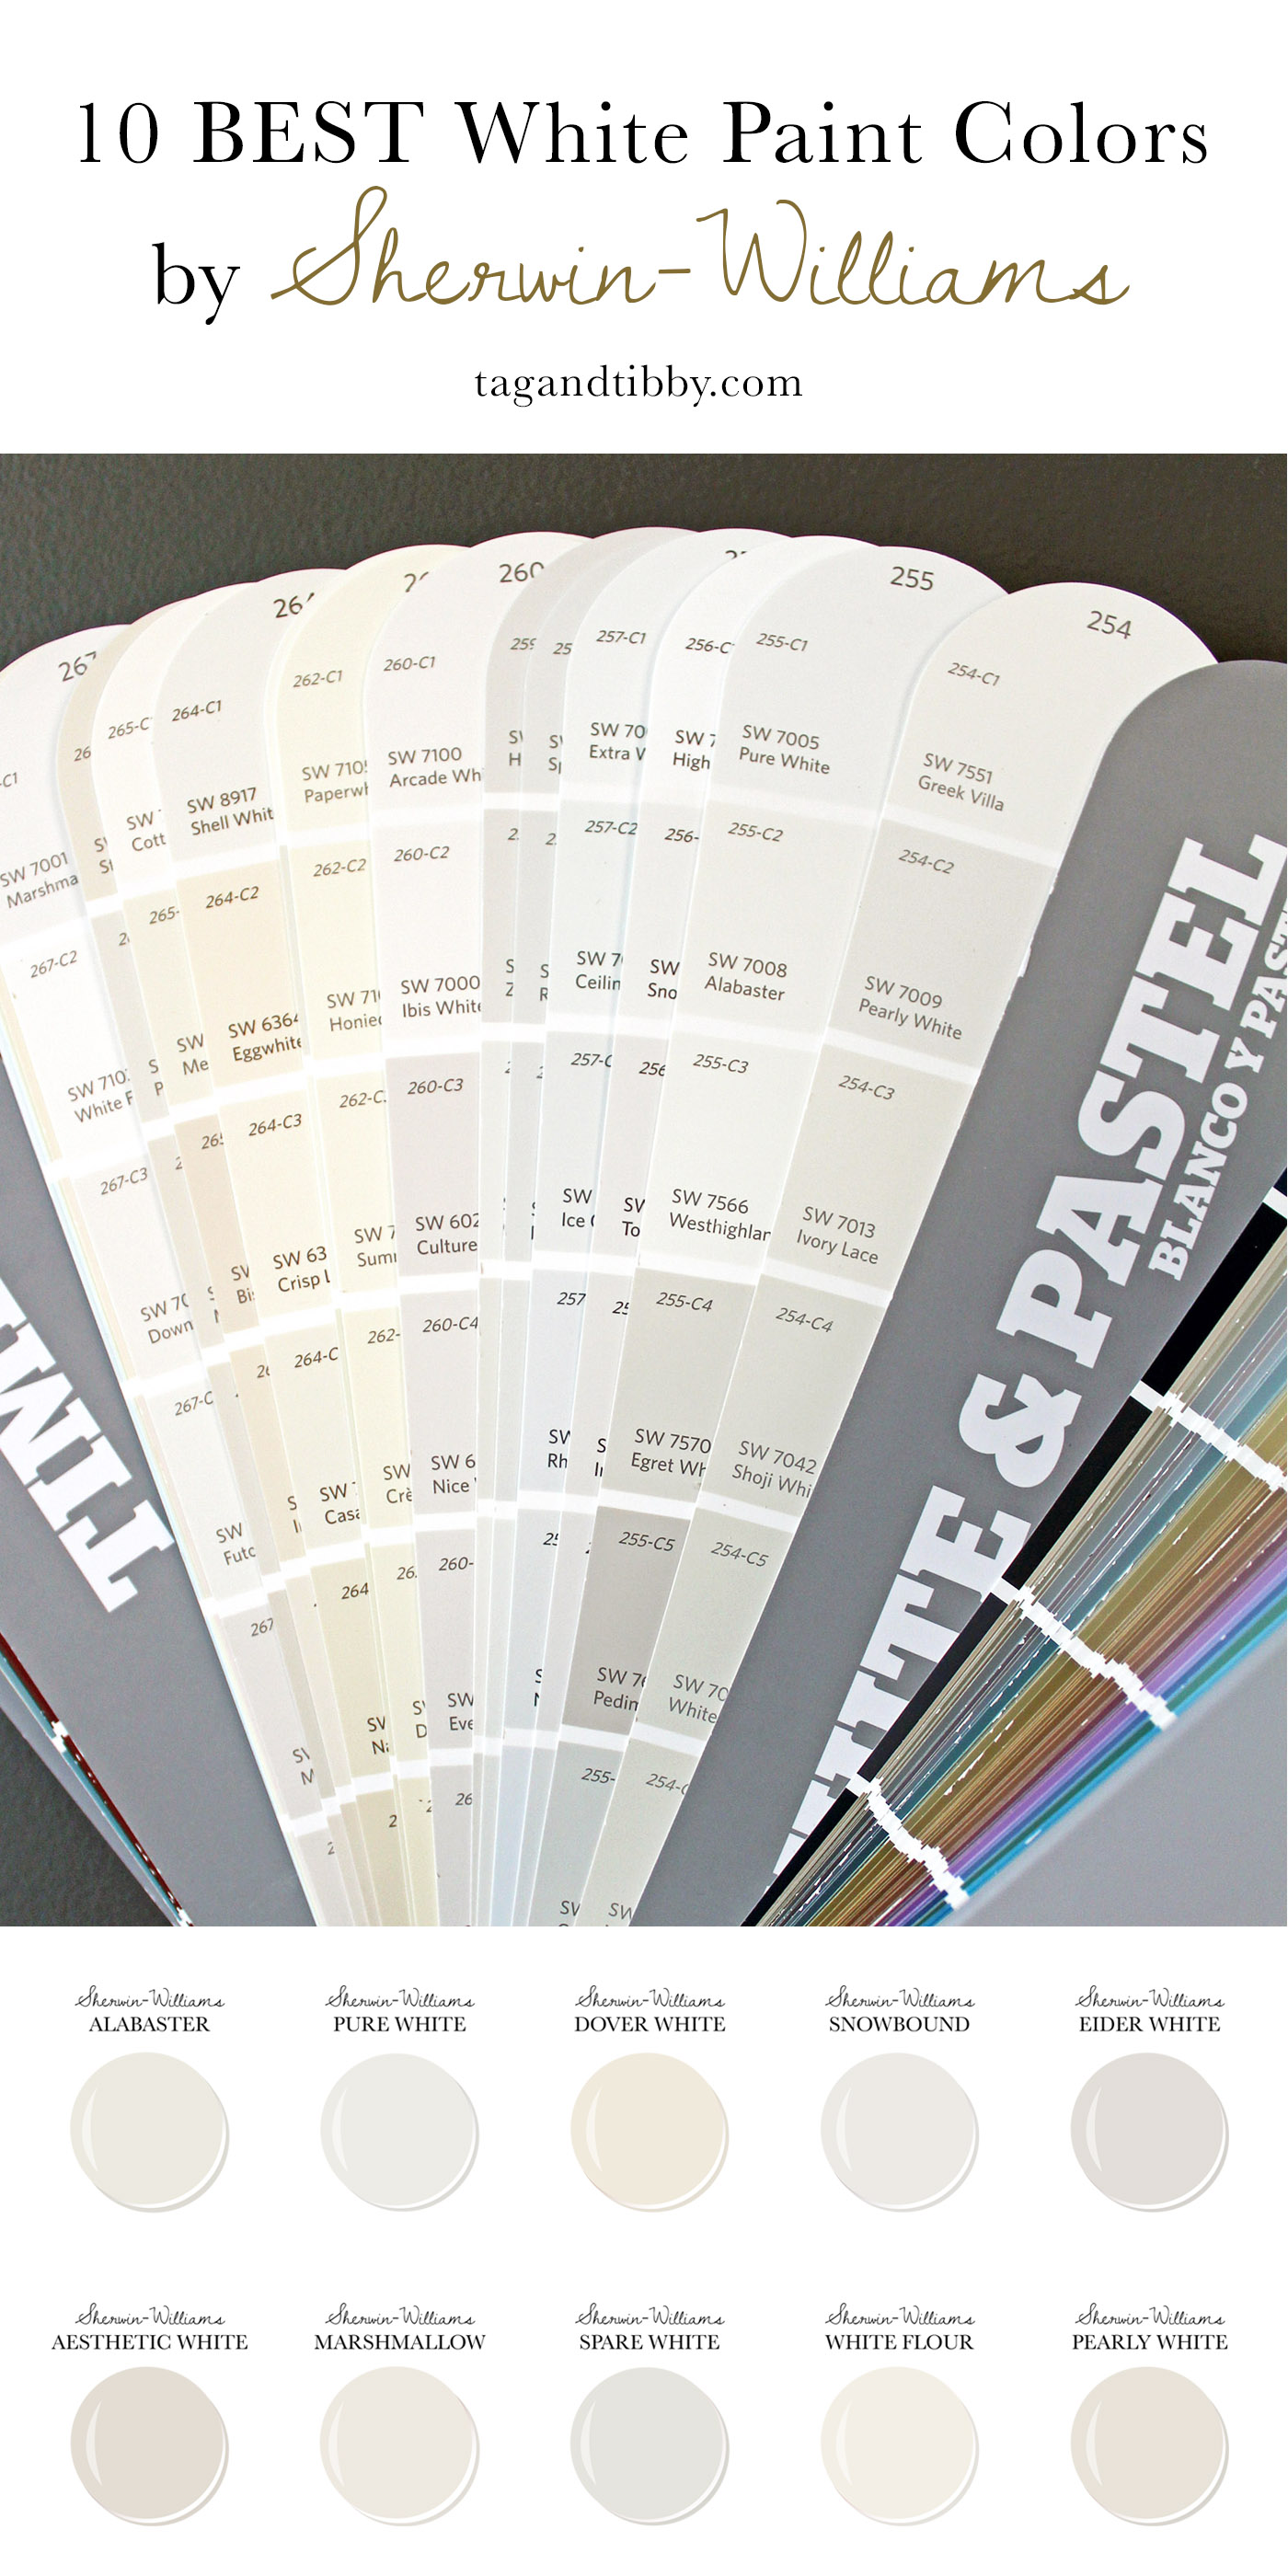 10 Best White Paint Colors by Sherwin-Williams #alabaster #purewhite #doverwhite #whitepaint #paintcolors